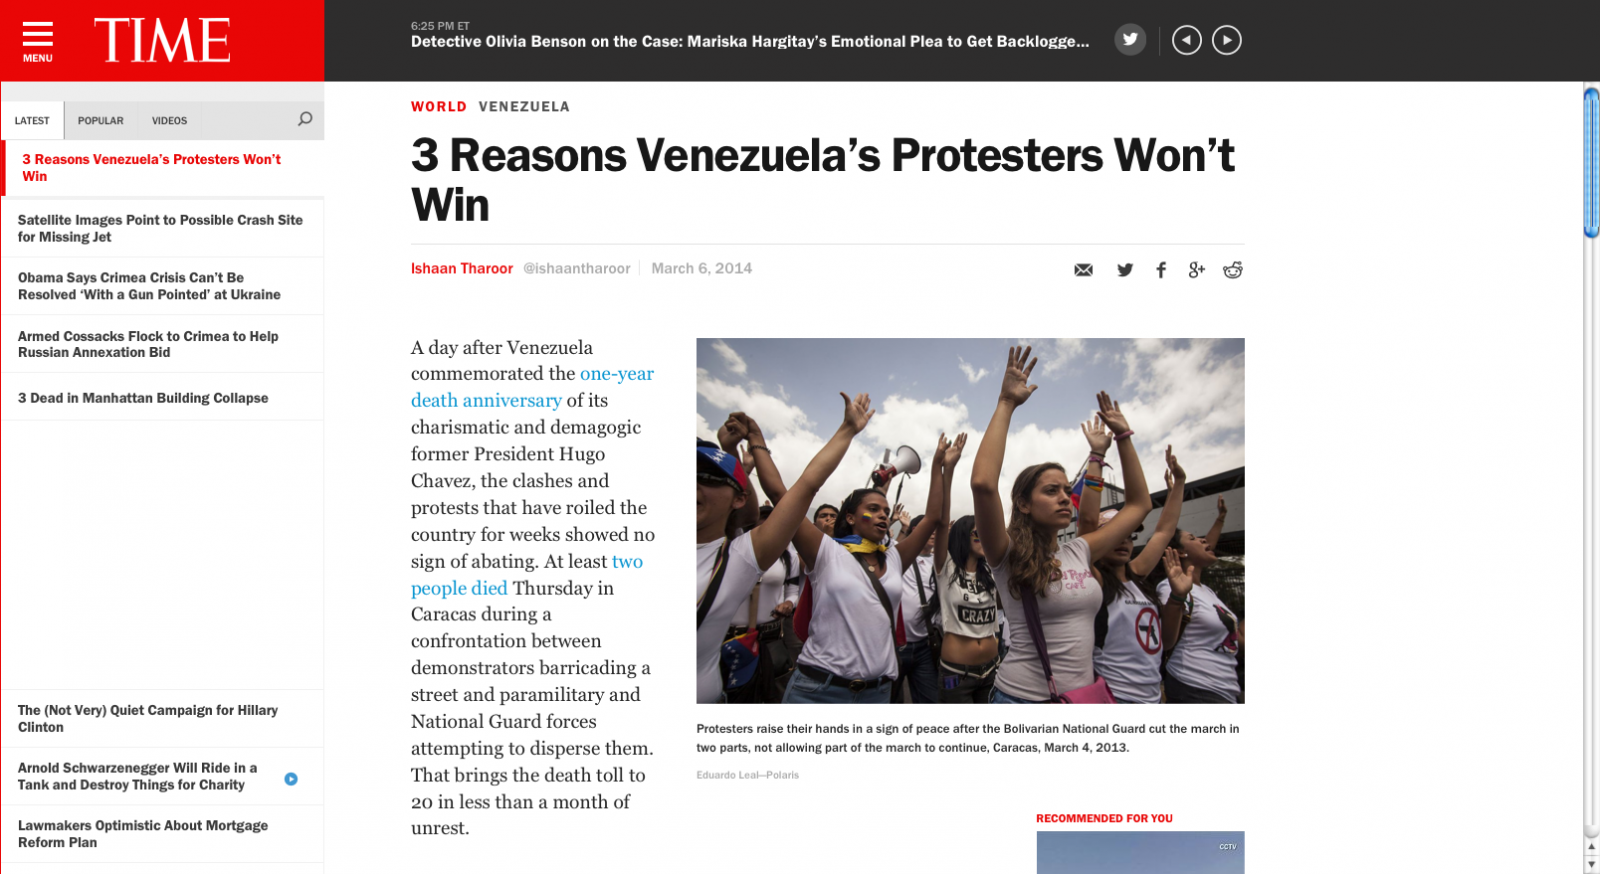 Art and Documentary Photography - Loading 3_Reasons_Venezuela_s_Protesters_Won_t_Win___TIME.com_2014-03-13_00-21-32.png